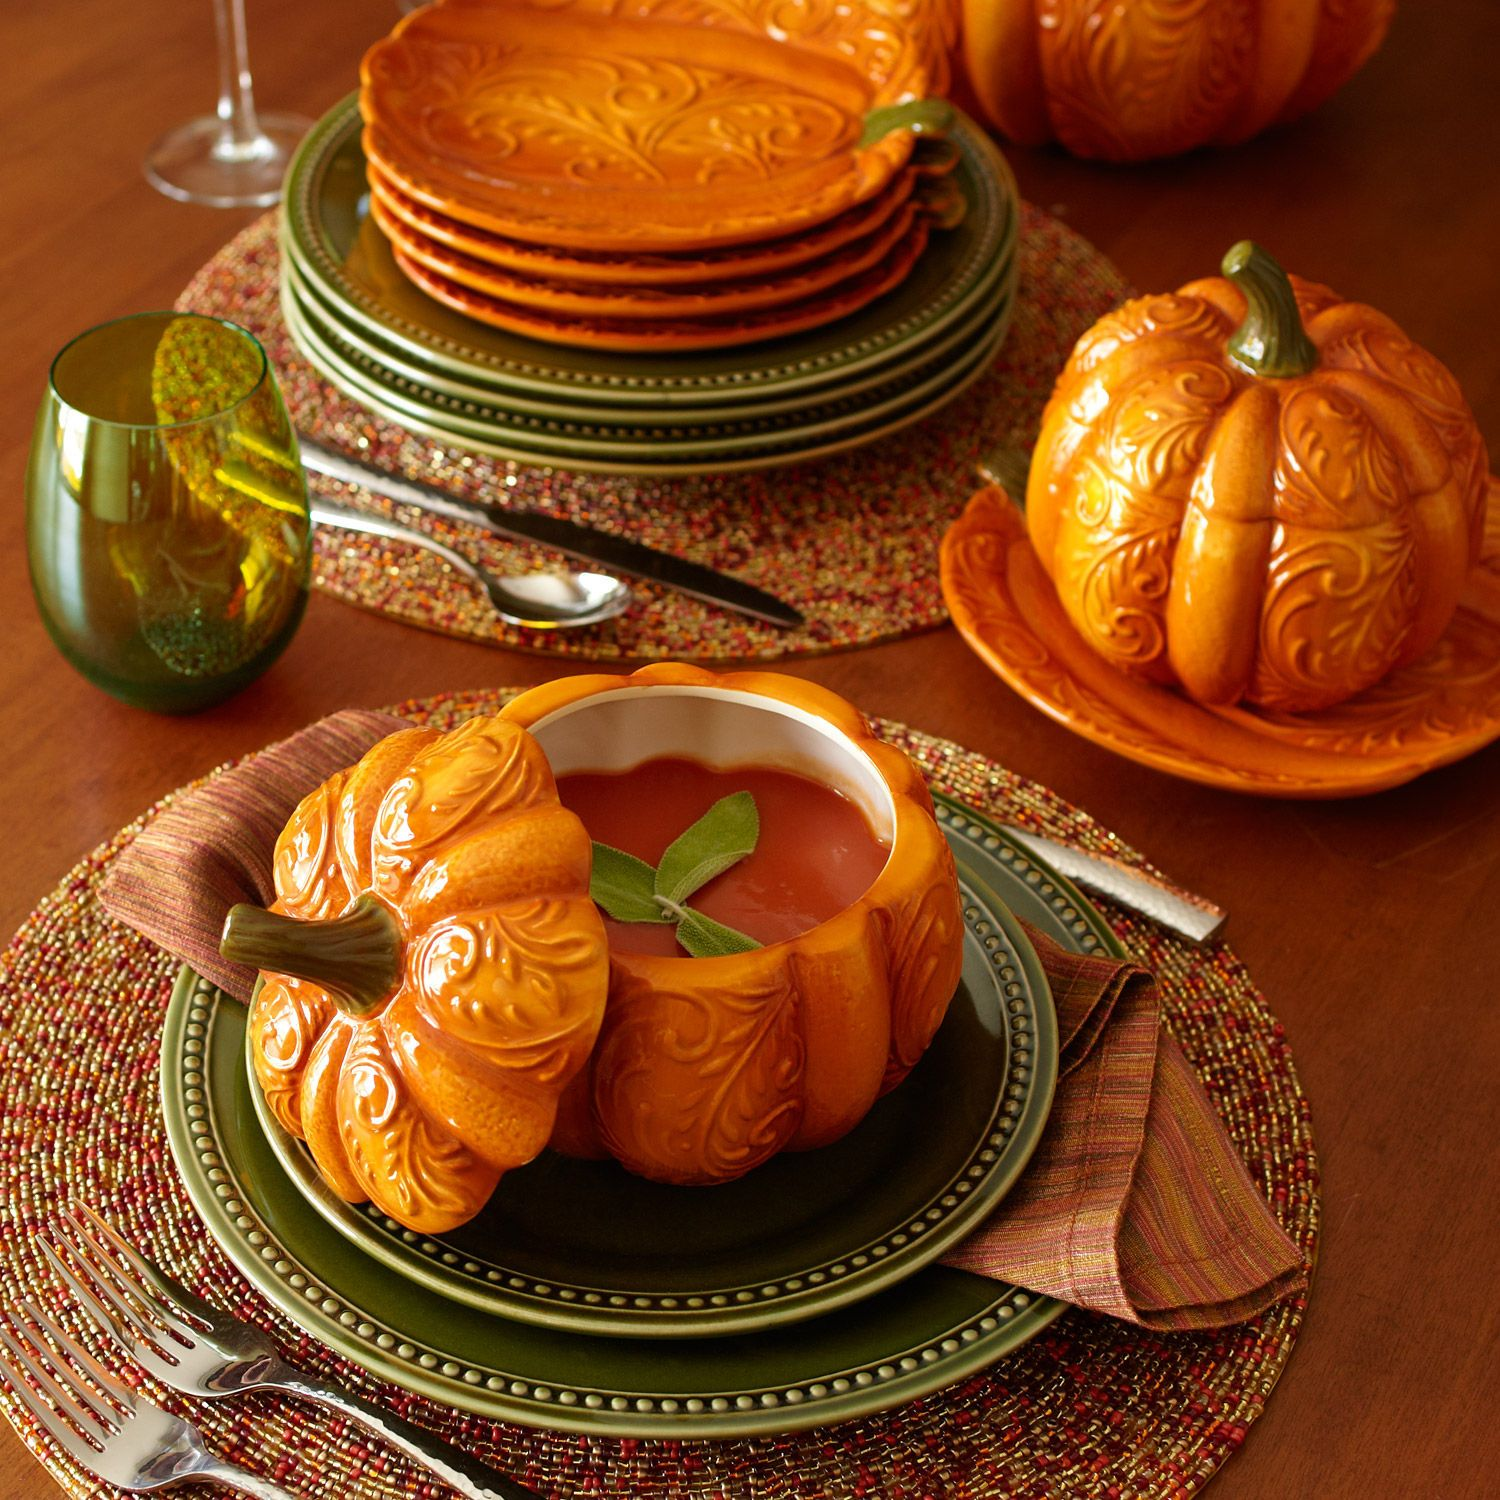 My Pumpkin Soup Bowls (from Pier One)